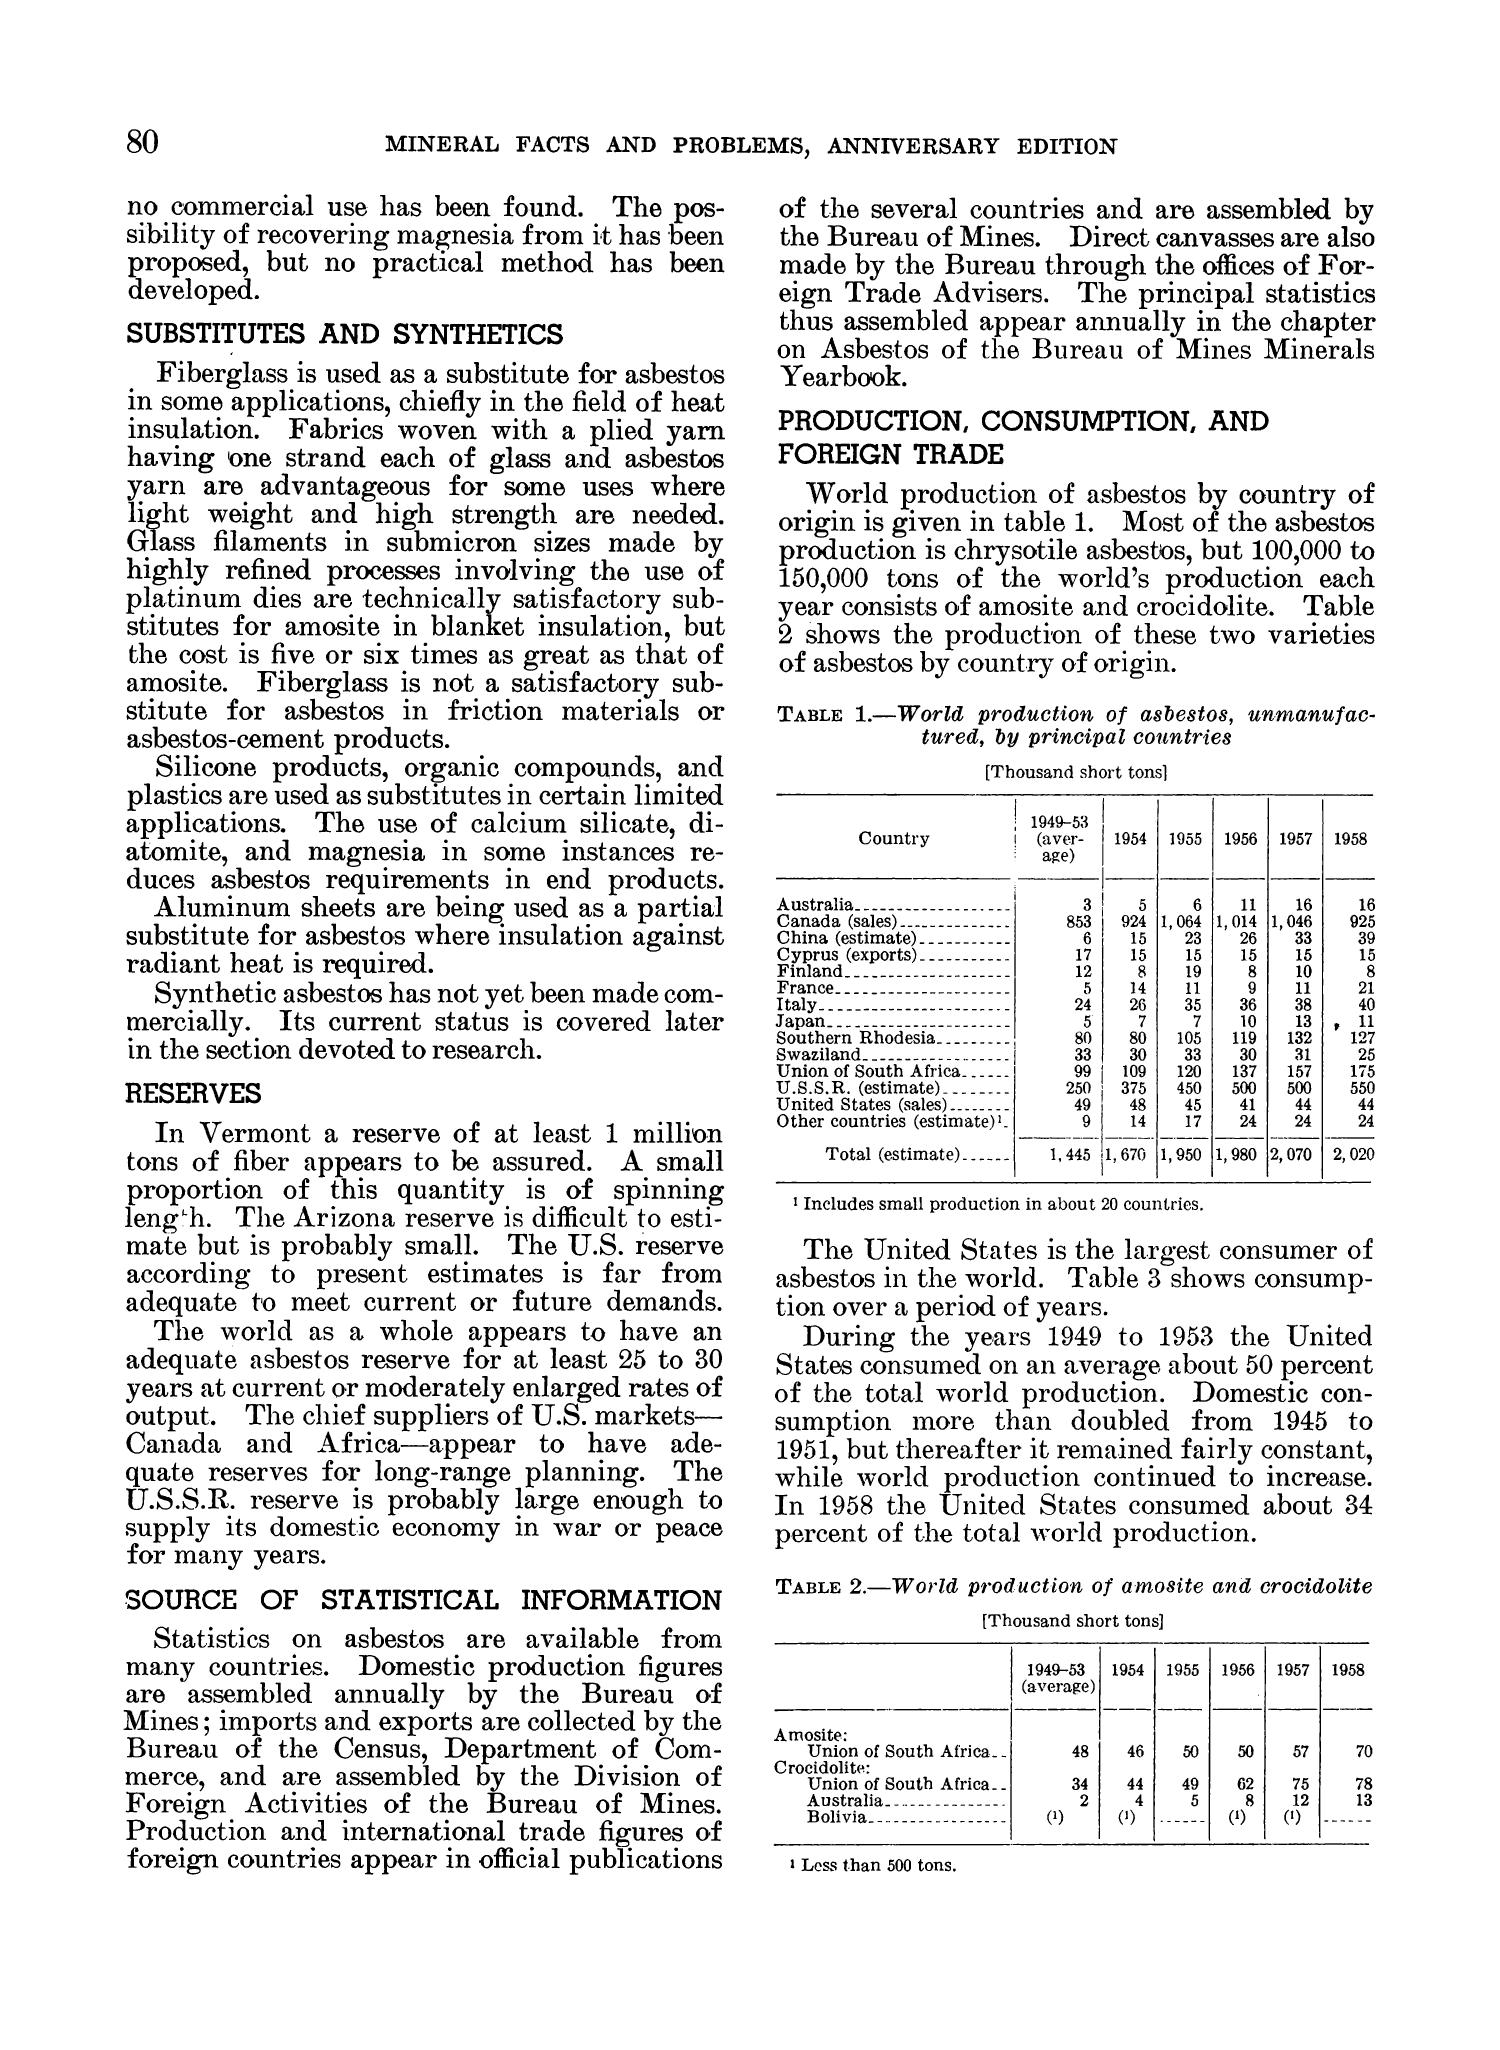 Mineral Facts and Problems: 1960 Edition                                                                                                      80